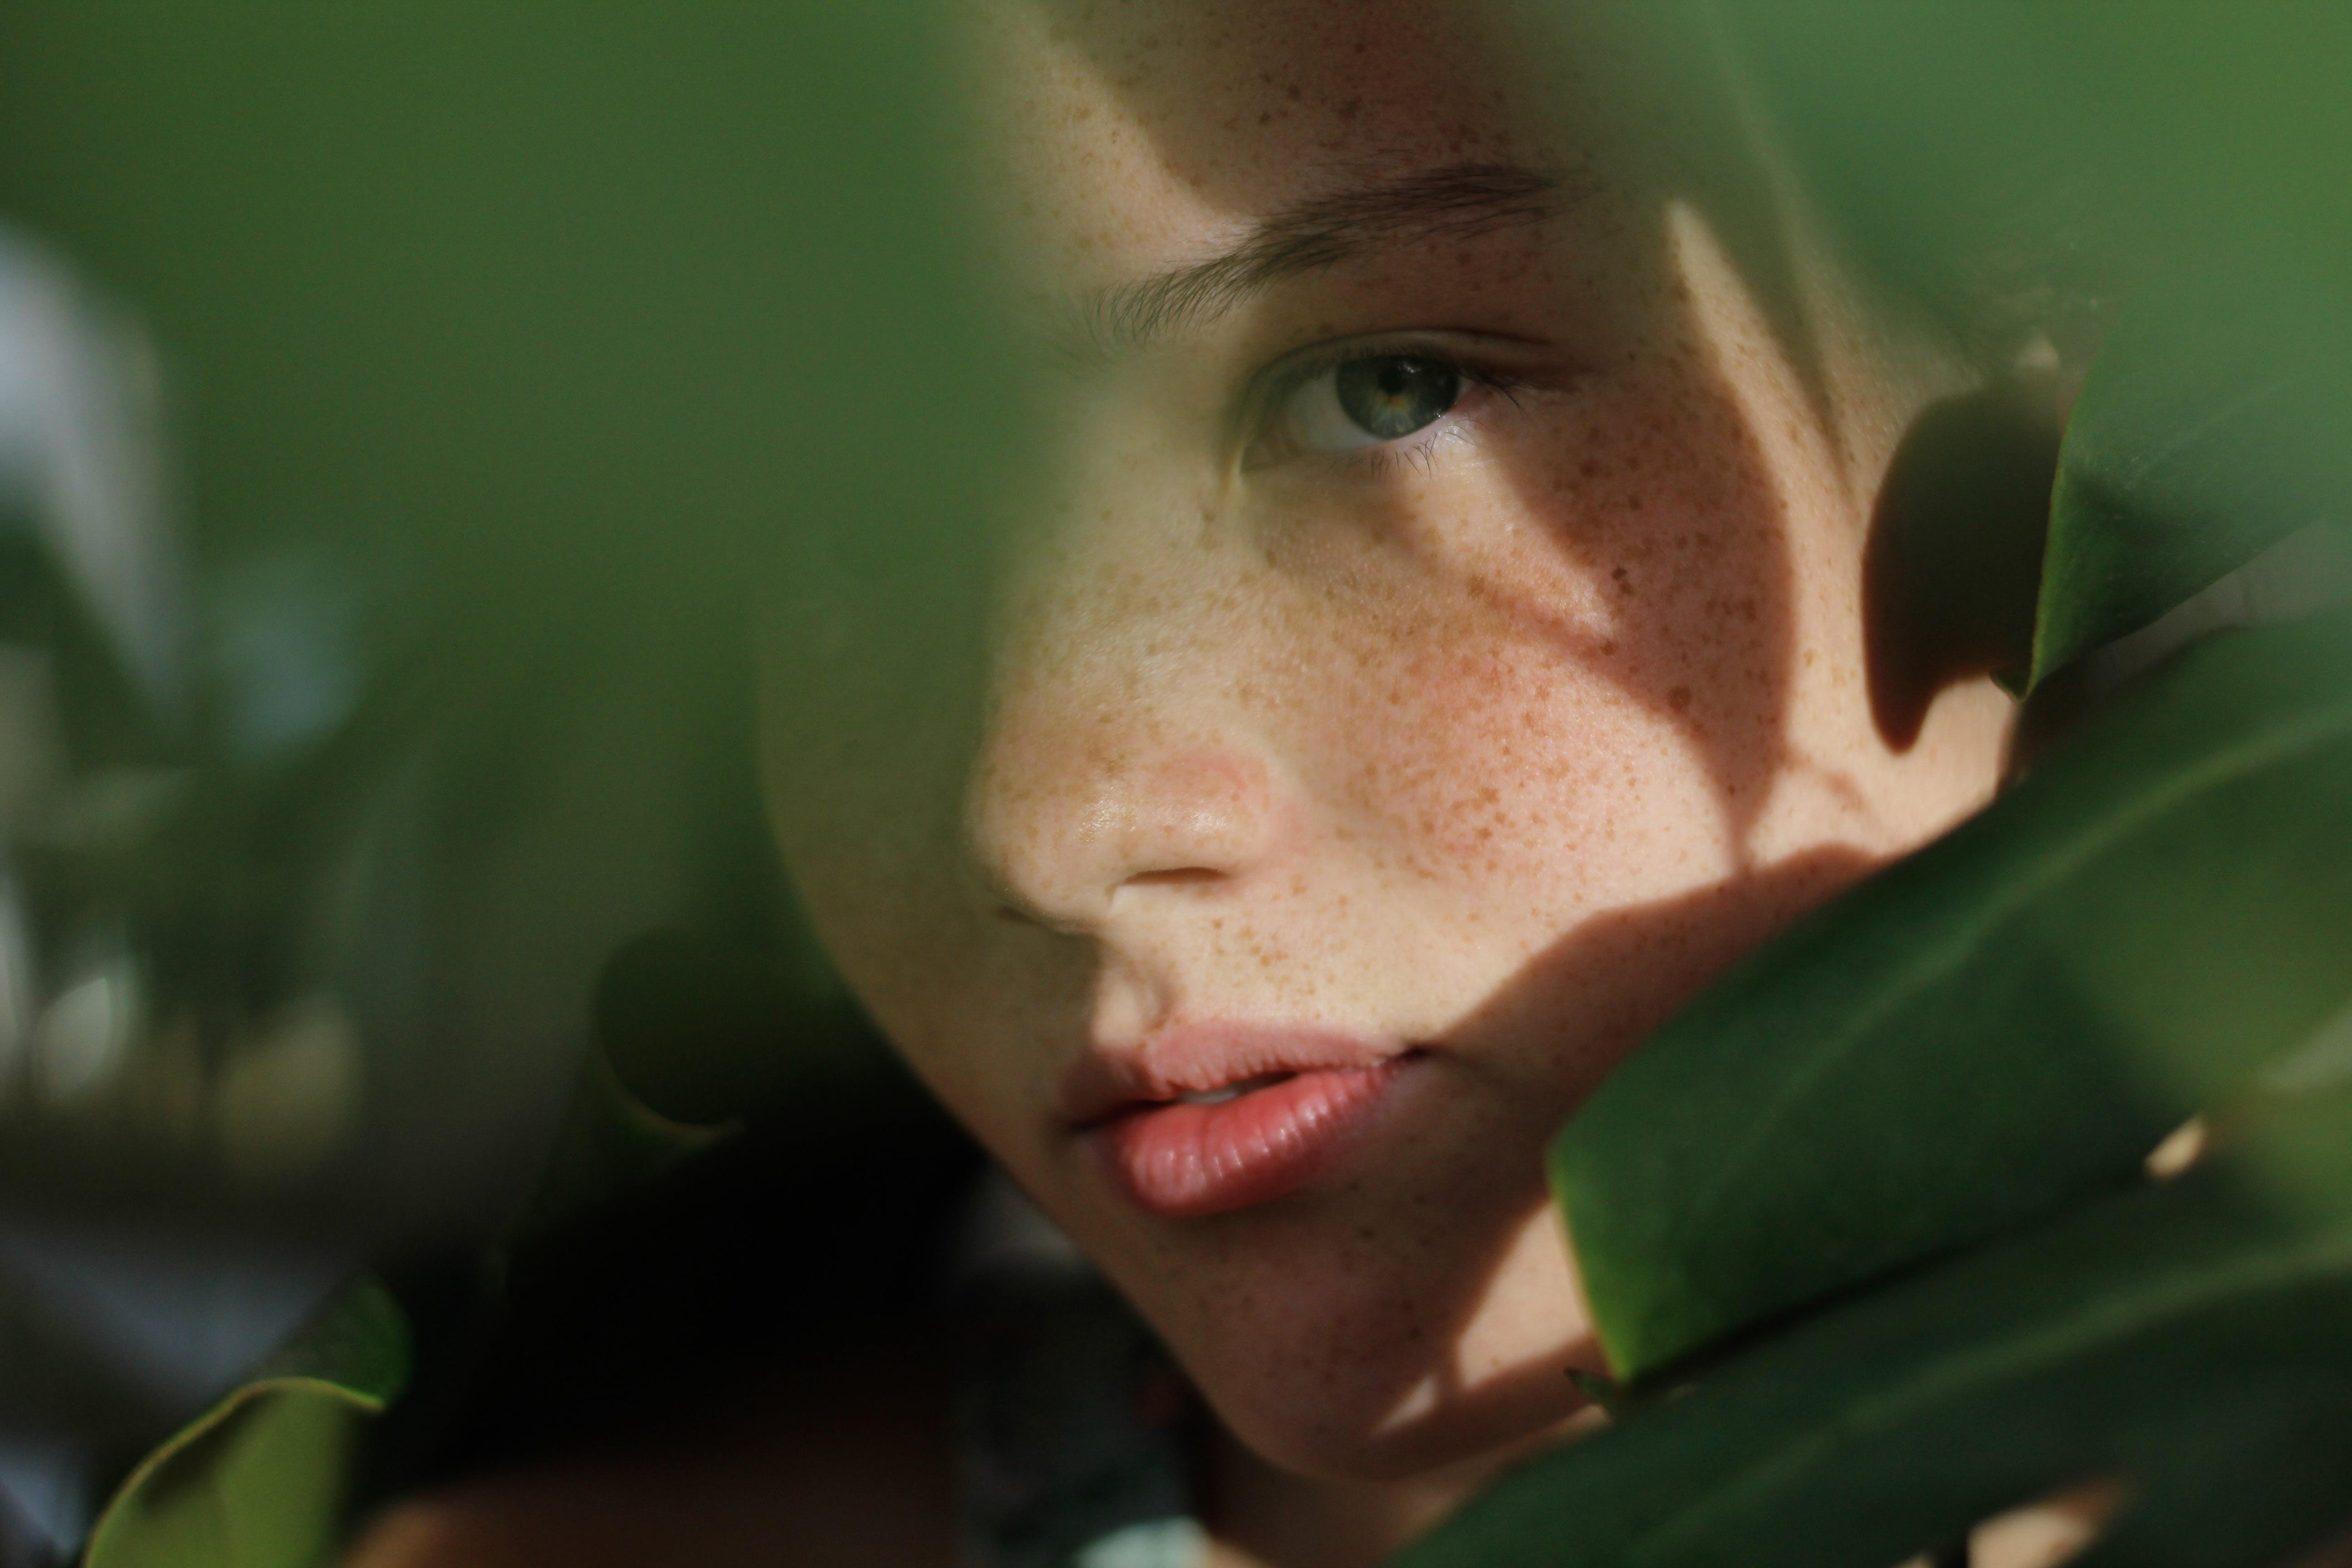 Close-up Photo of Woman Hiding Behind Green Leaves